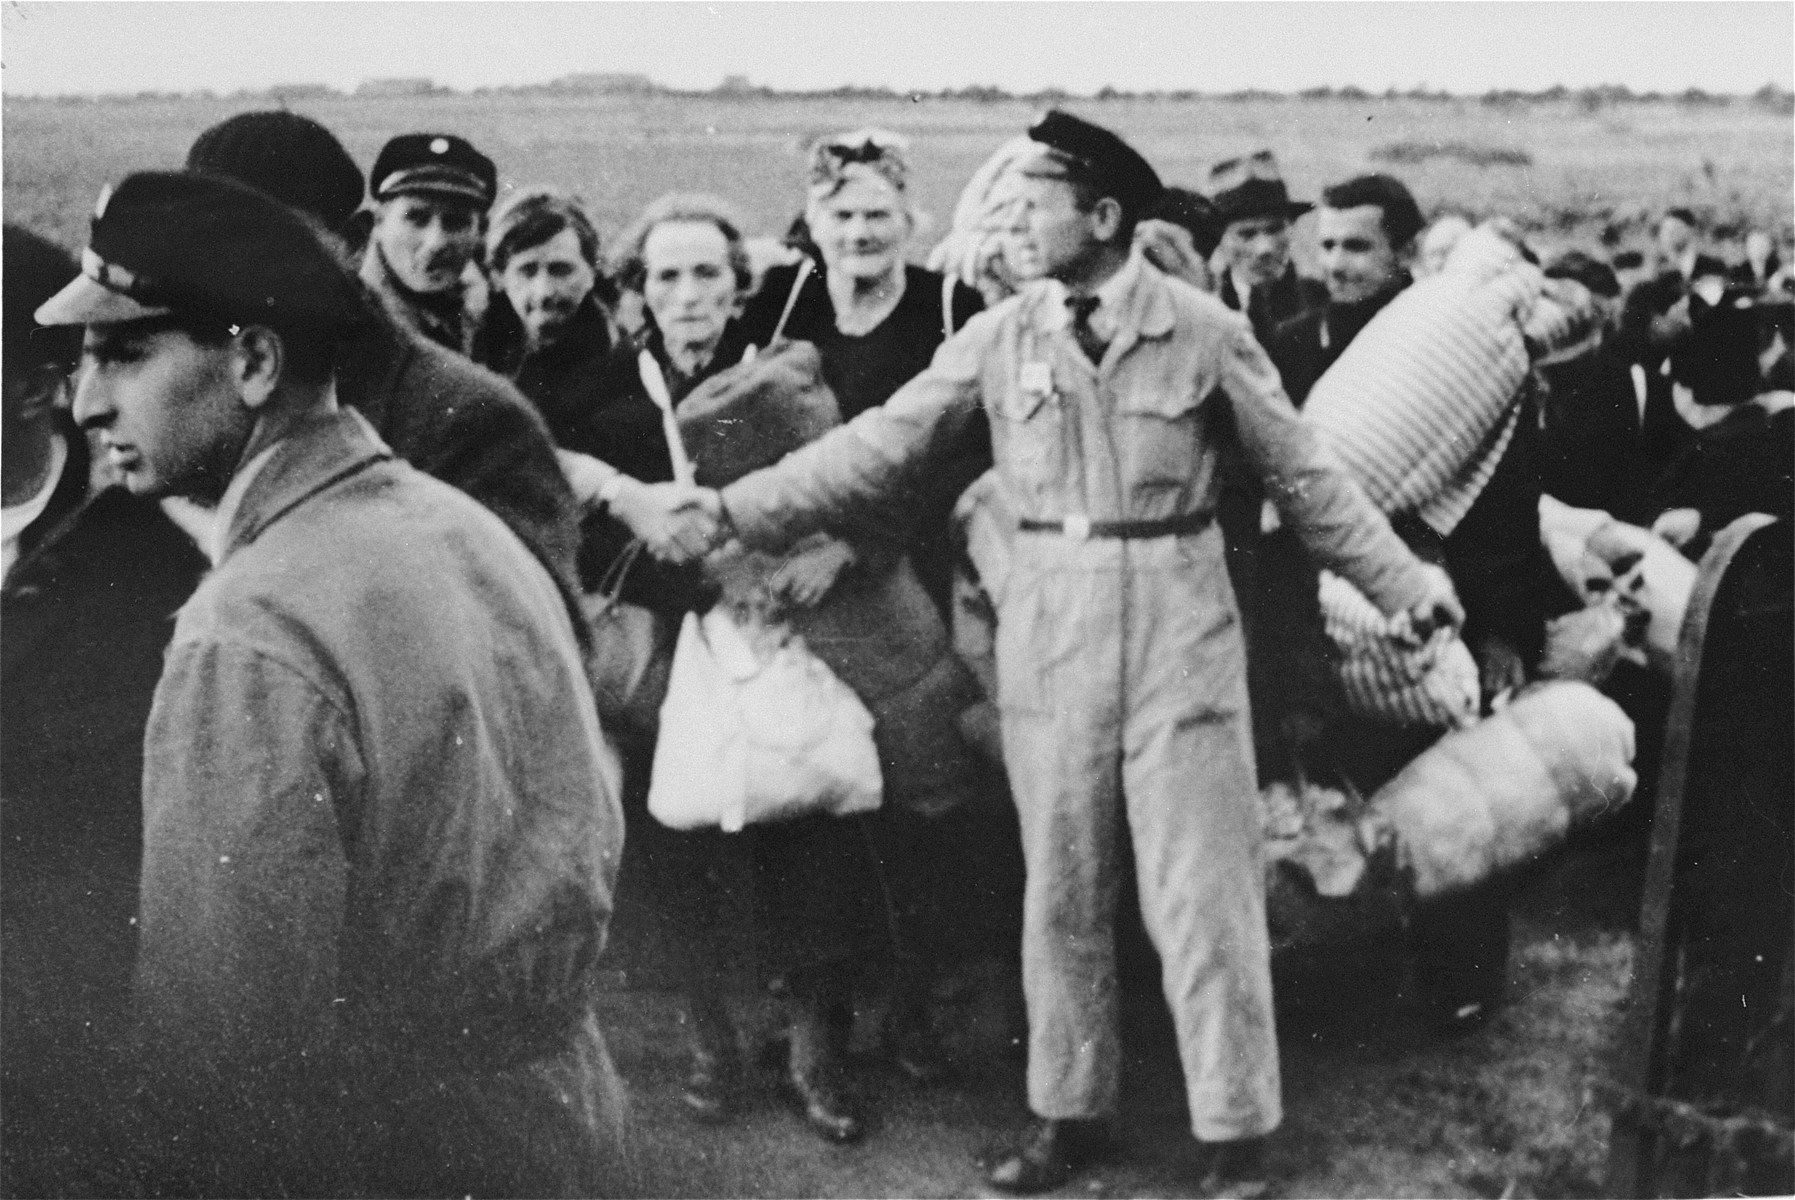 Members of the Ordedienst, the Jewish Police in Westerbork, direct an arriving transport of Dutch Jews into the camp.  The policeman in the center is A. Schoenfliess.